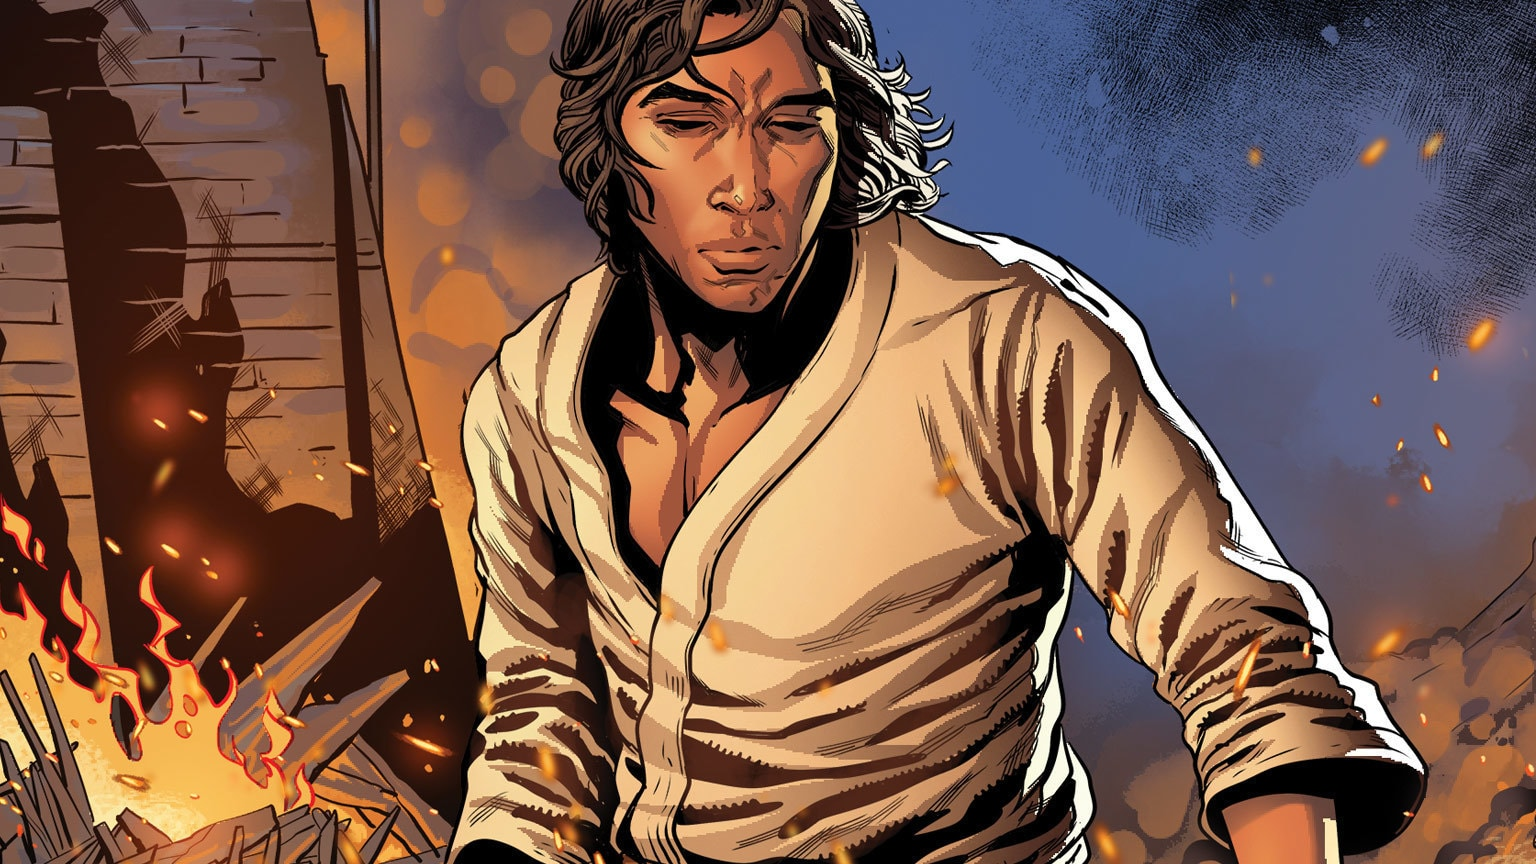 Ben Solo's Hate Grows in The Rise of Kylo Ren #1 – Exclusive